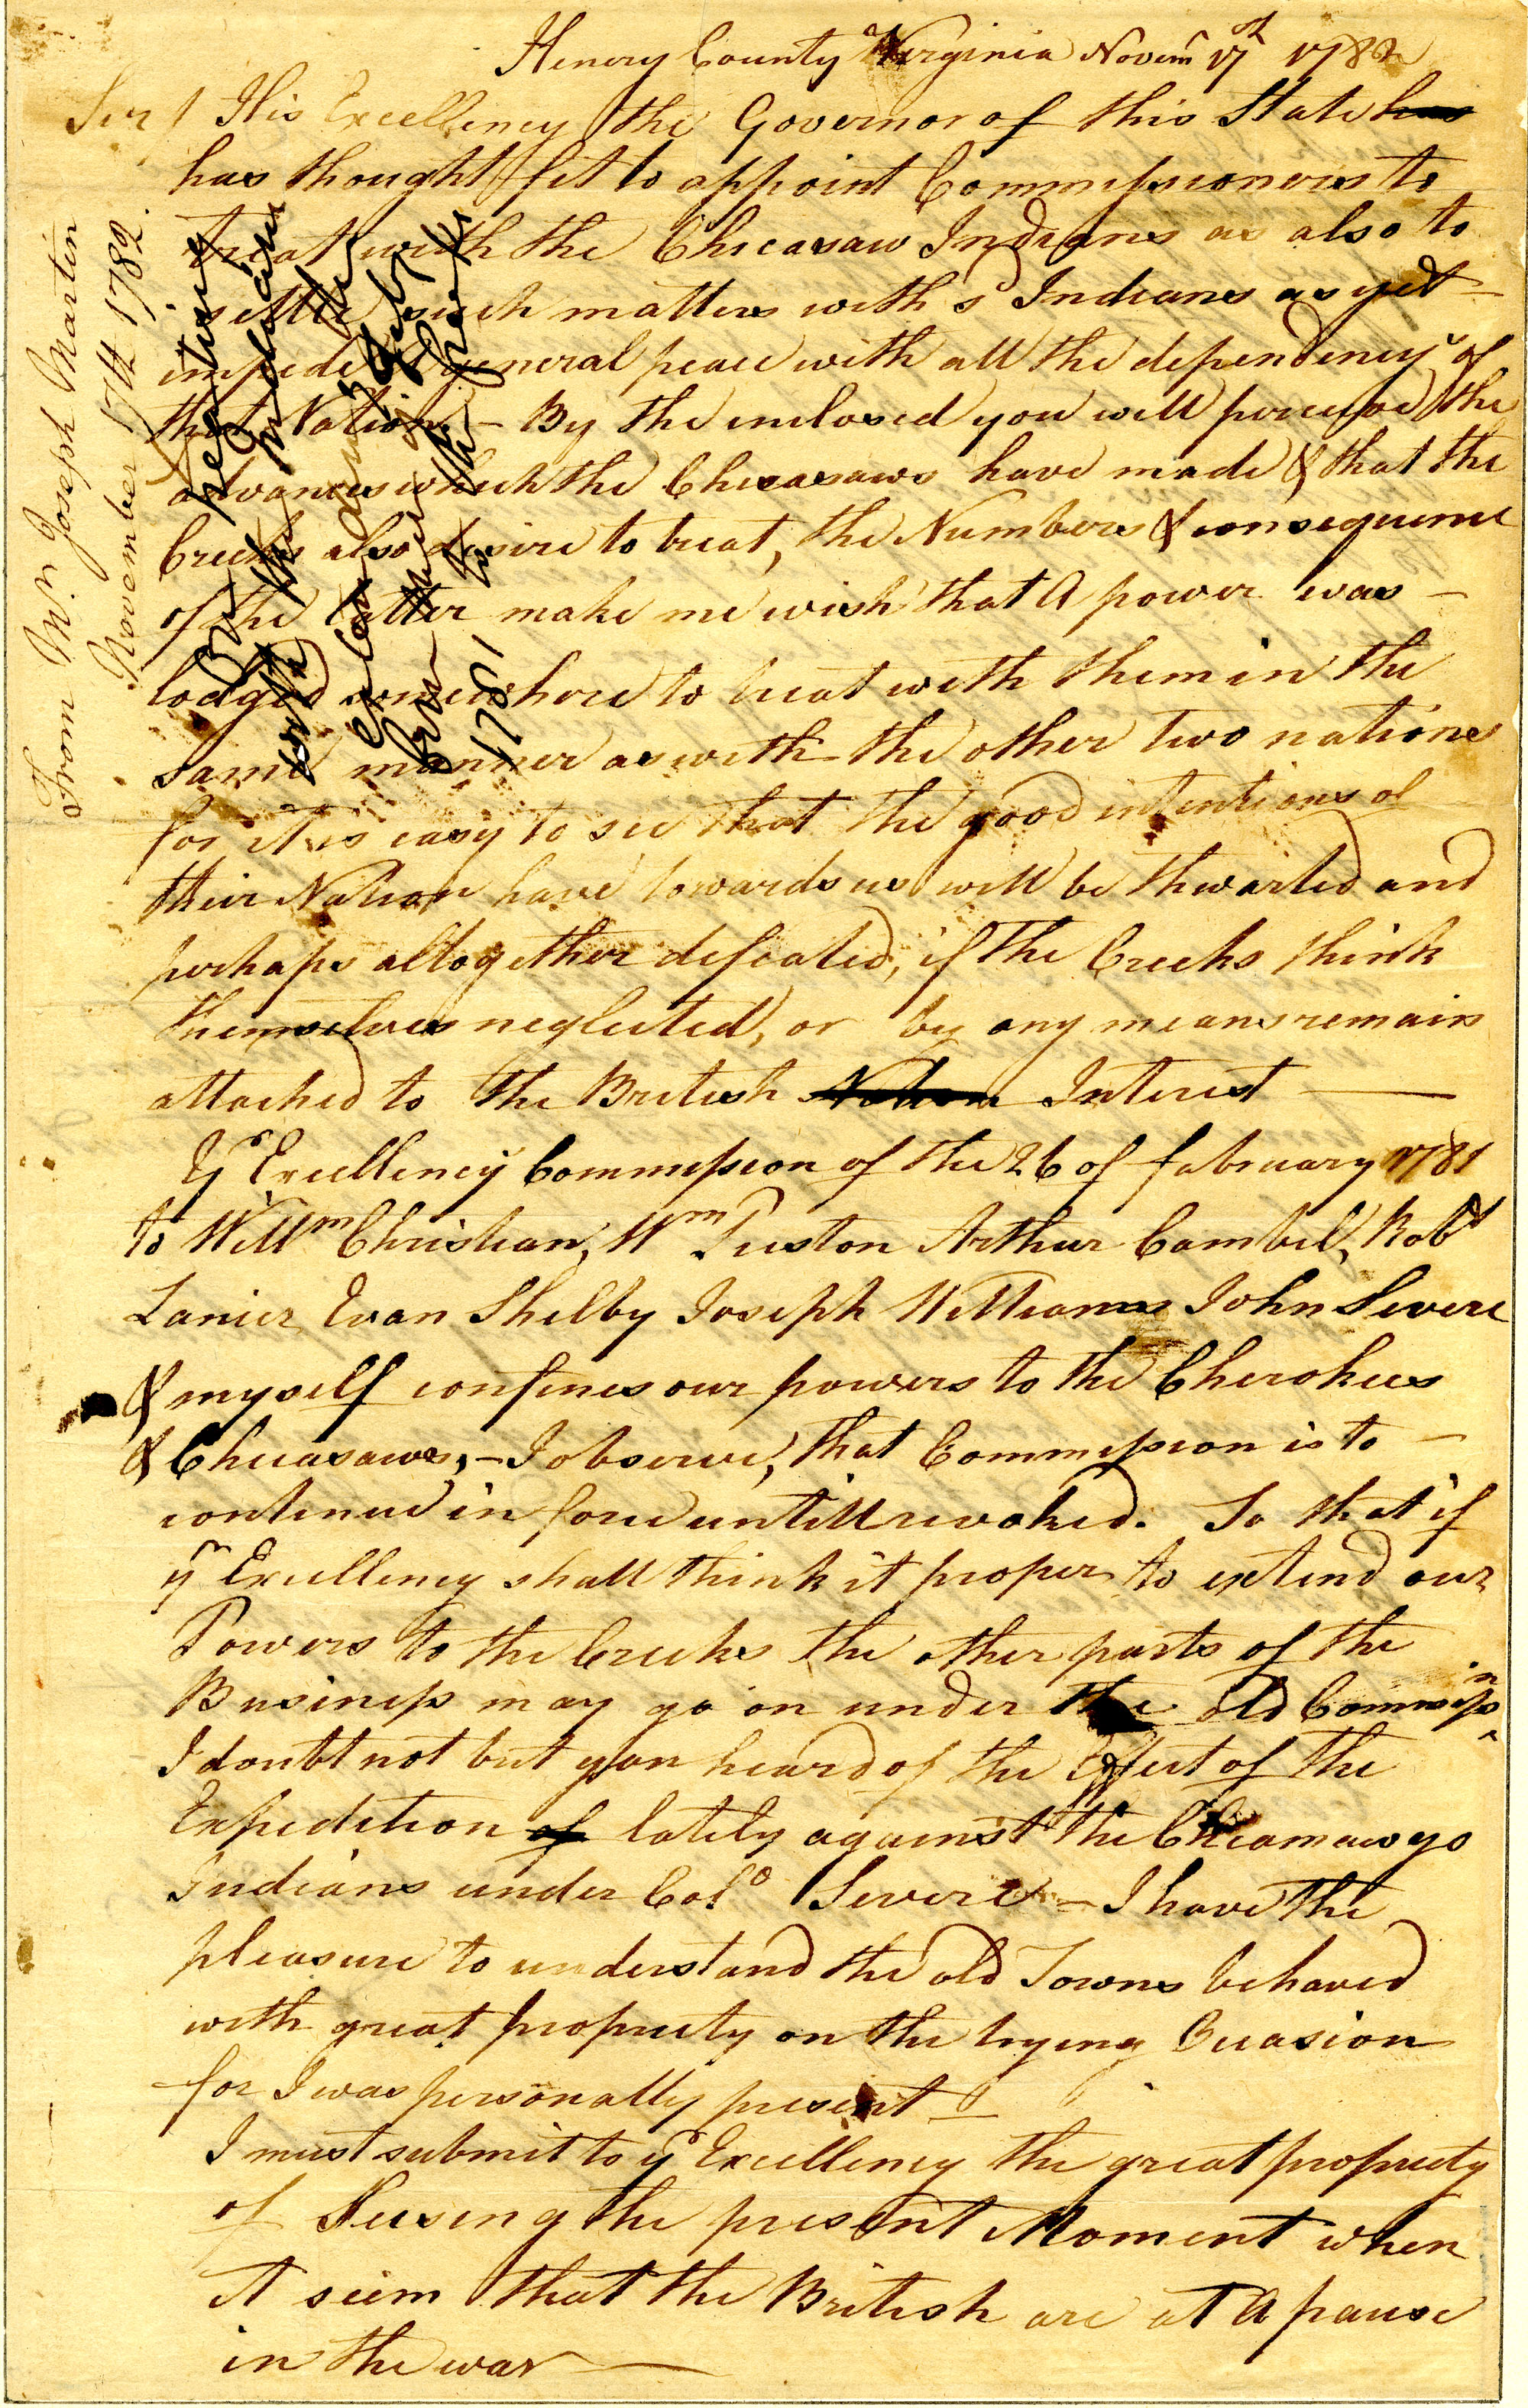 Letter from Joseph Martin to Nathanael Greene